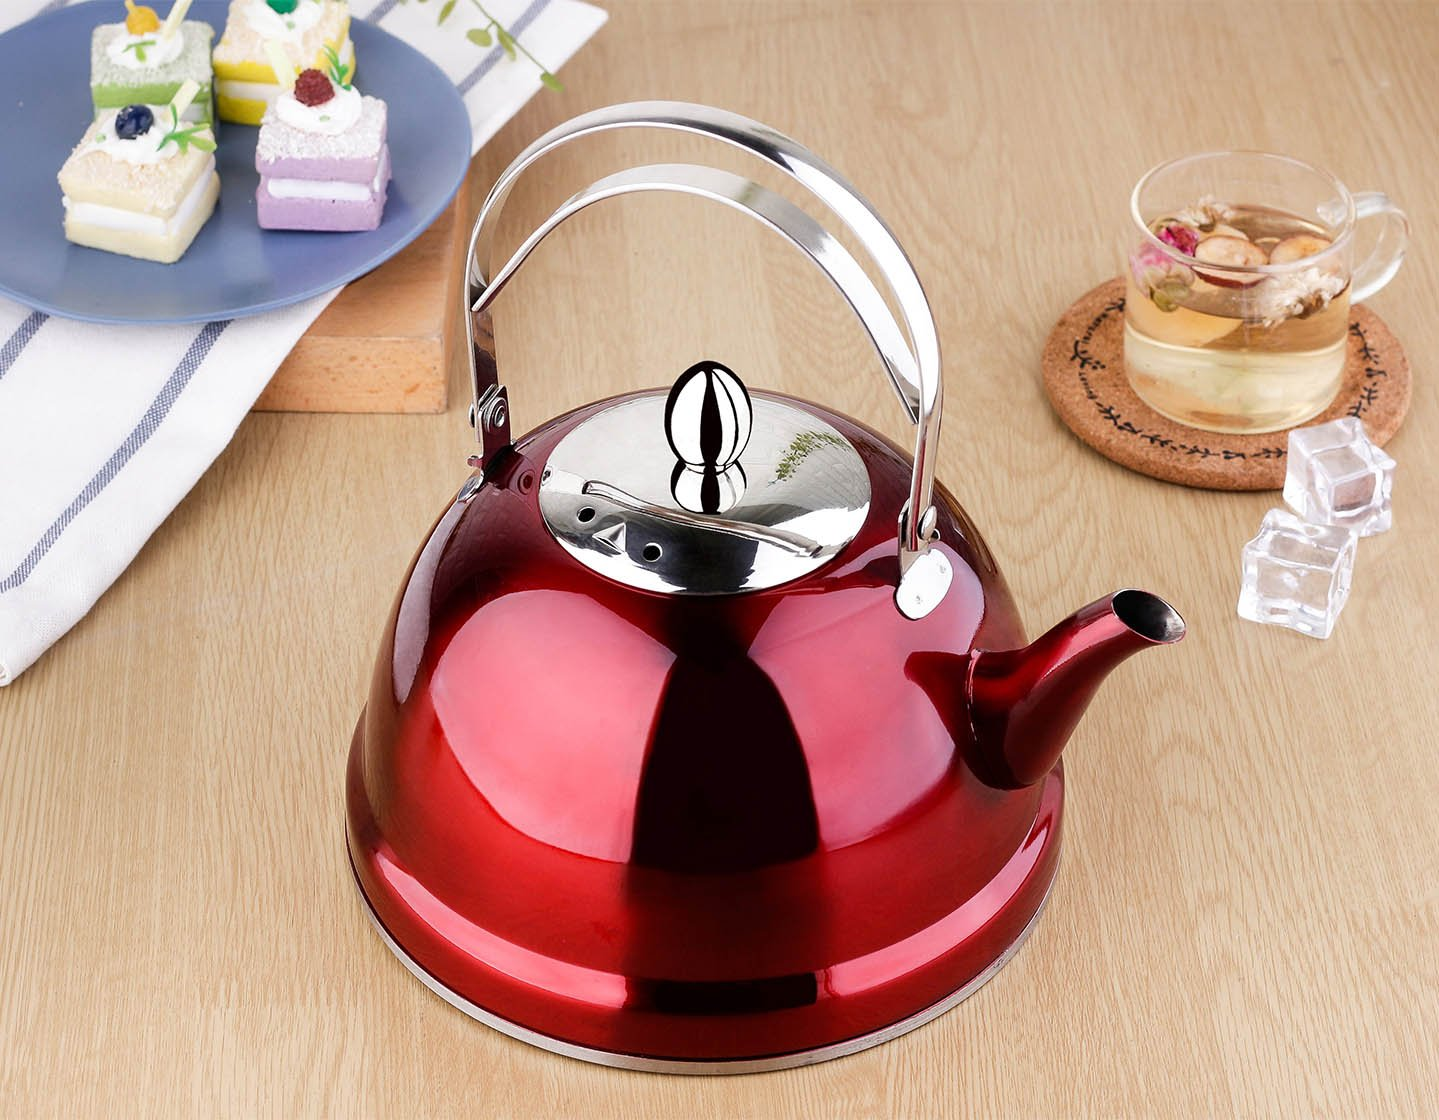 2.1 Quart 68 Ounce Red by Onlycooker Teakettles-2-Red-2.0L Tea Pot with Infuser Loose Tea for Stove Top 18//8 Stainless Steel Coffee Kettle 8 Cup Quick Boil Sturdy Teapot Hot Water Mirror Finish 2 Liter